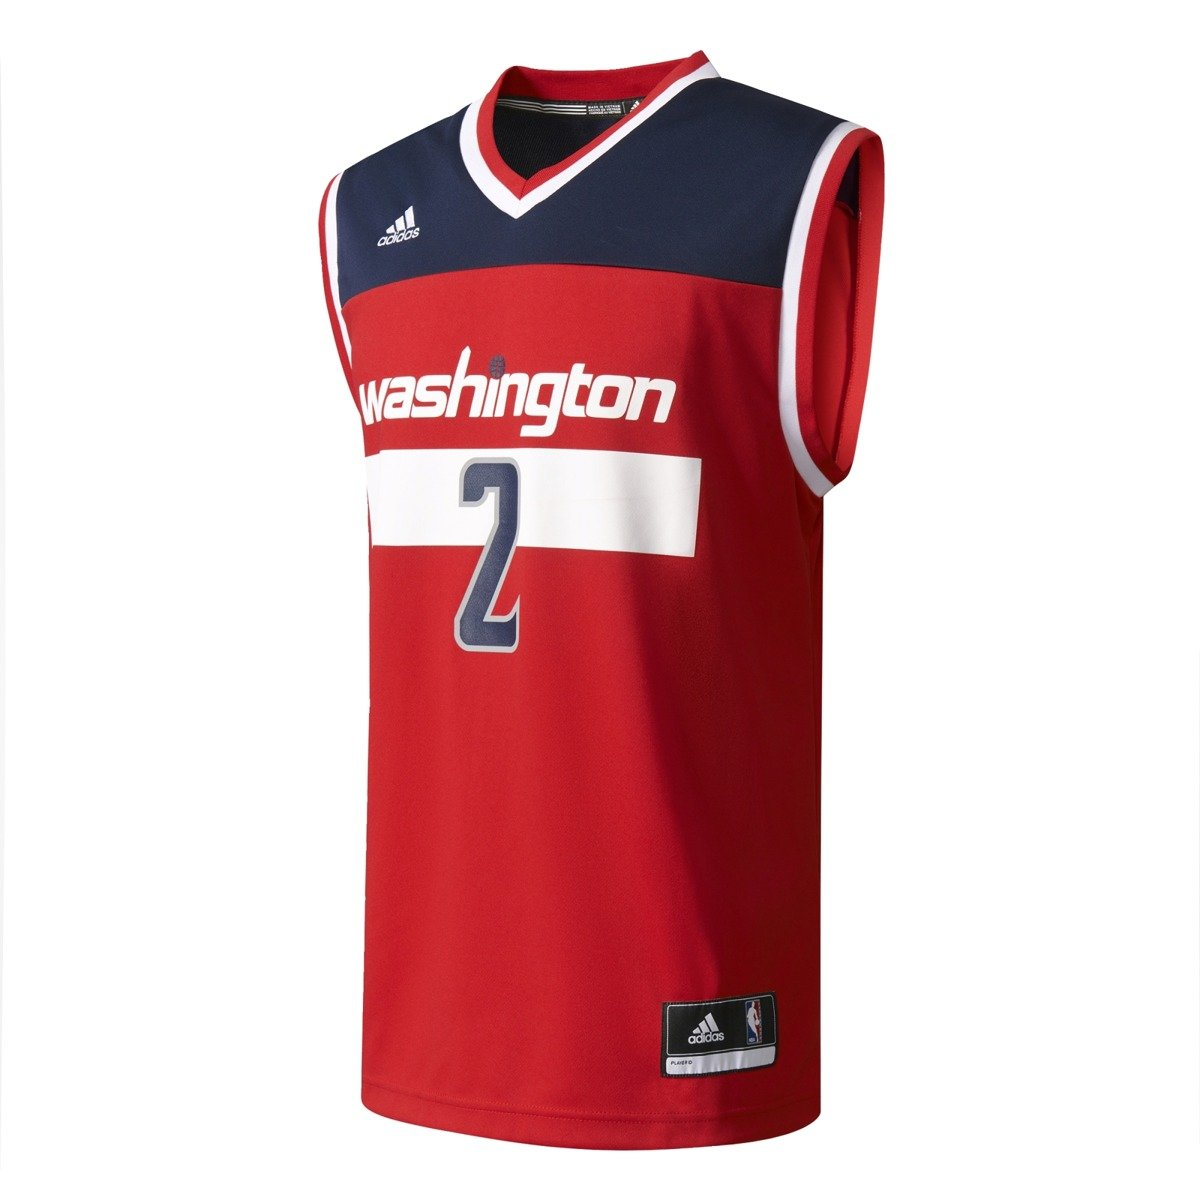 a71414e1a68 official adidas nba washington wizards john wall replica jersey l71447  b6179 ec369